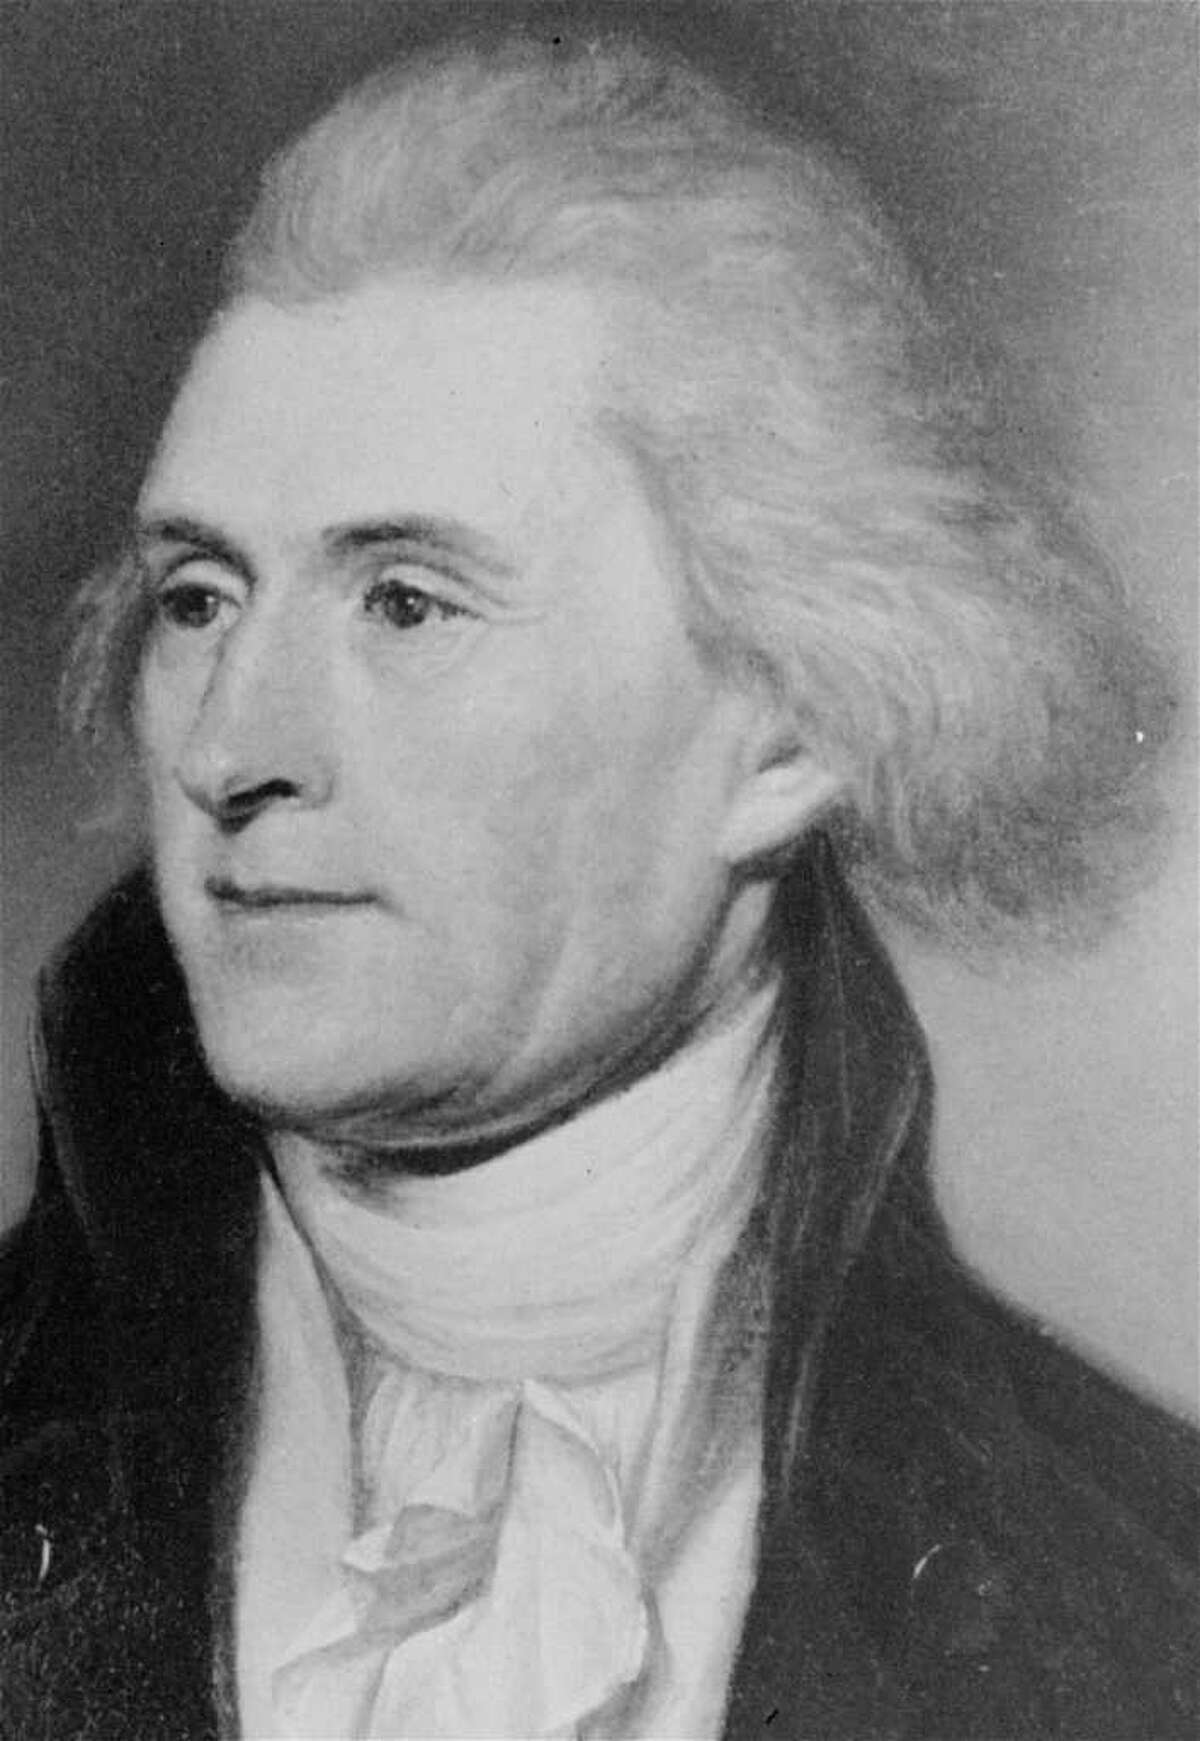 3. Thomas Jefferson, 1801-1809 (AP Photo)